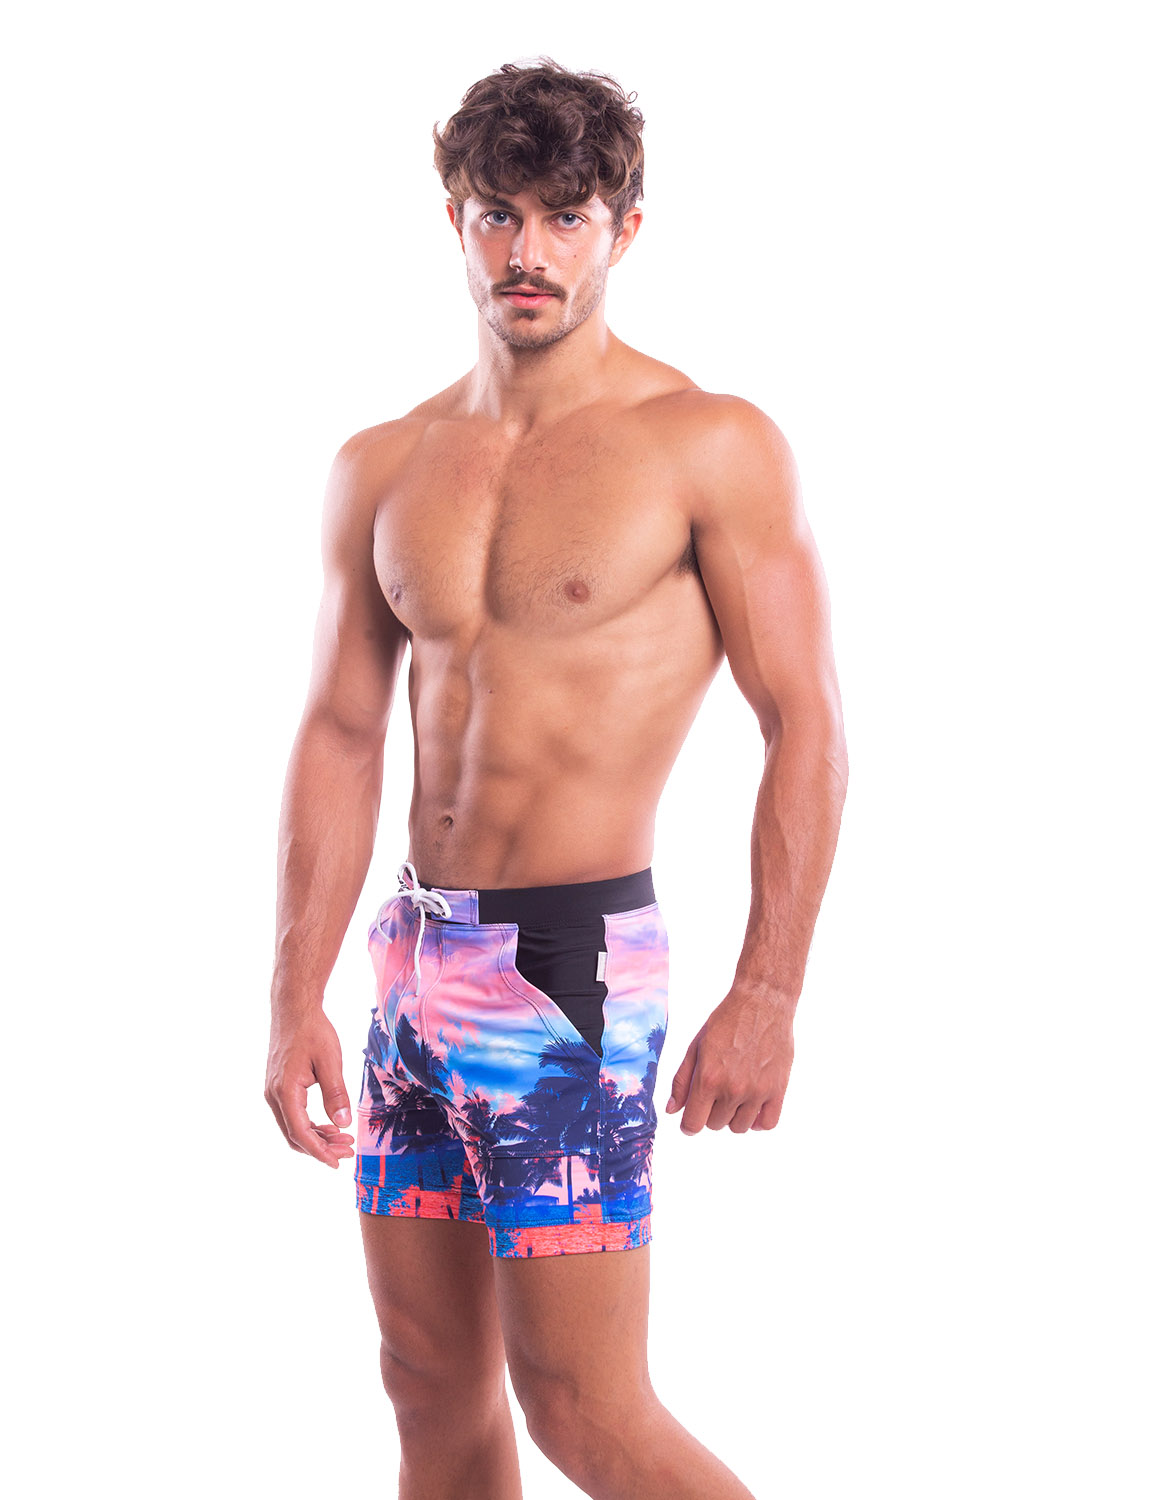 c746804446 Taddlee Swimwear Men's Swimsuits Swim Boxer Briefs Square Cut Surf Bathing  Suits Item NO: TAD-YK55-XF188